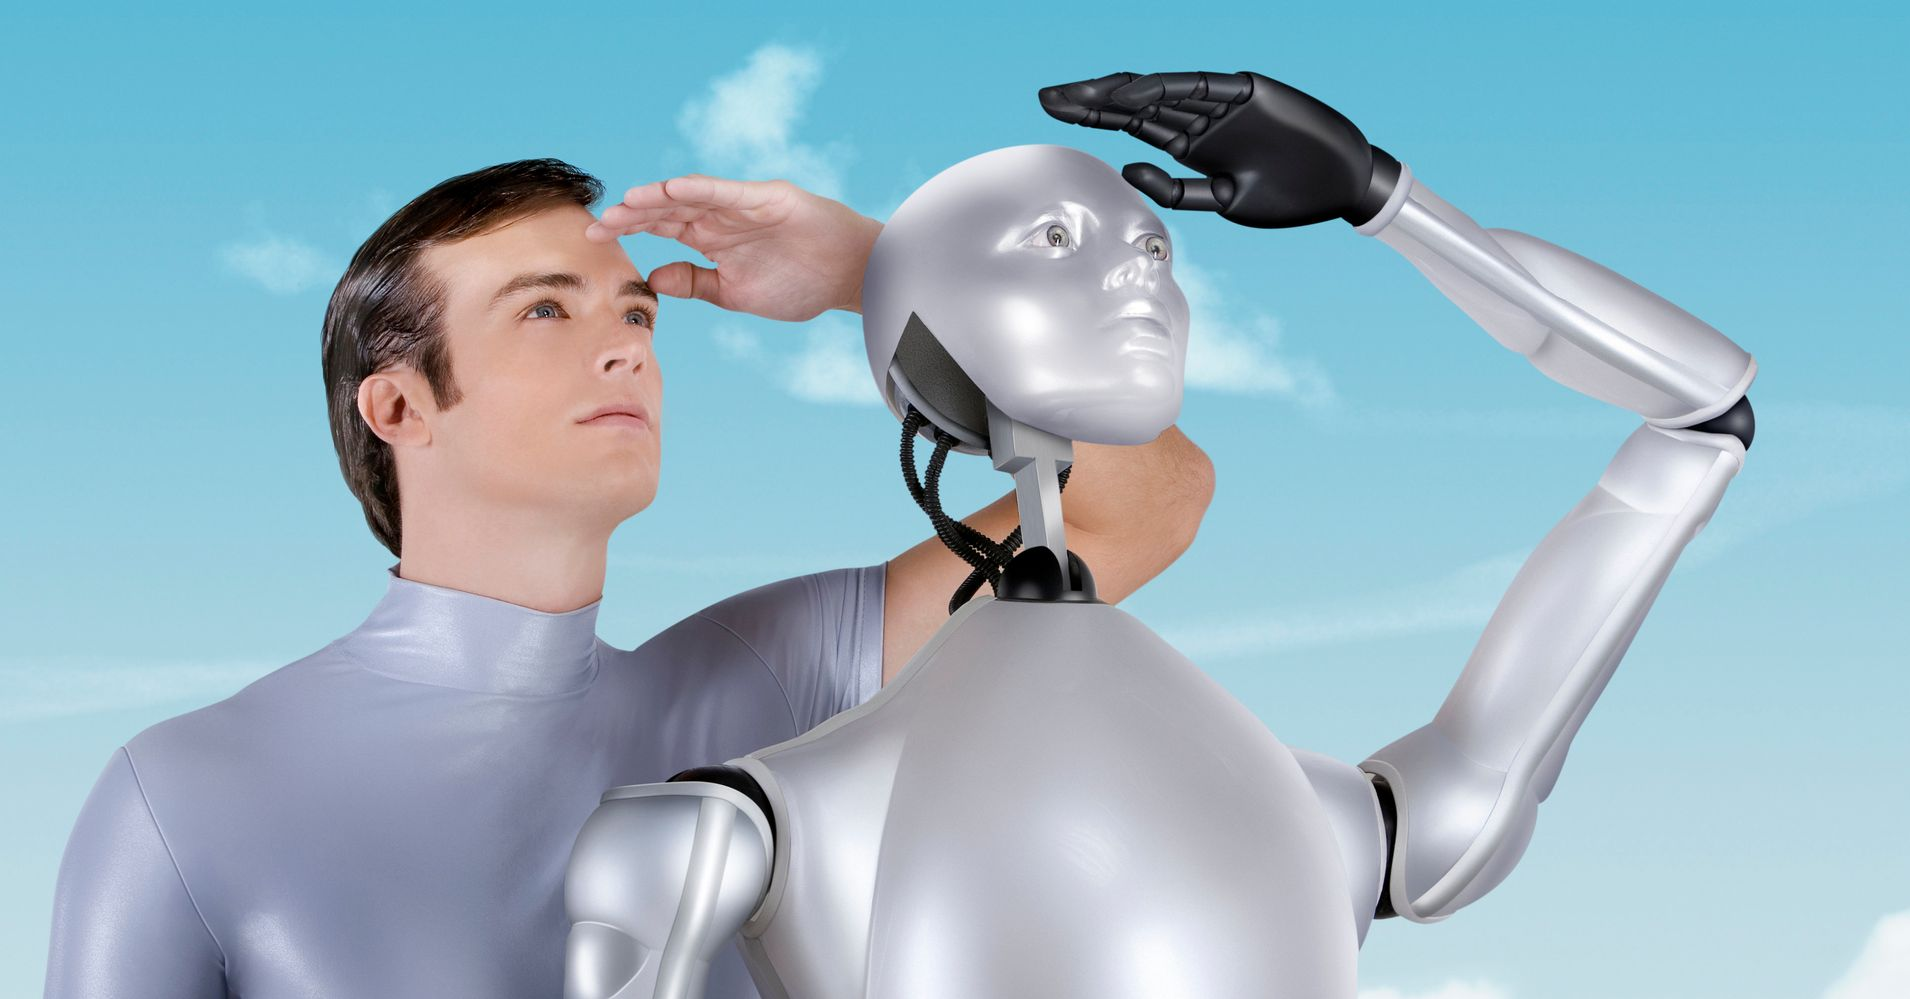 dependence of humans on machine Our dependence on technology 3 pages 745 words december 2014 saved essays save your essays here so you can locate them quickly.